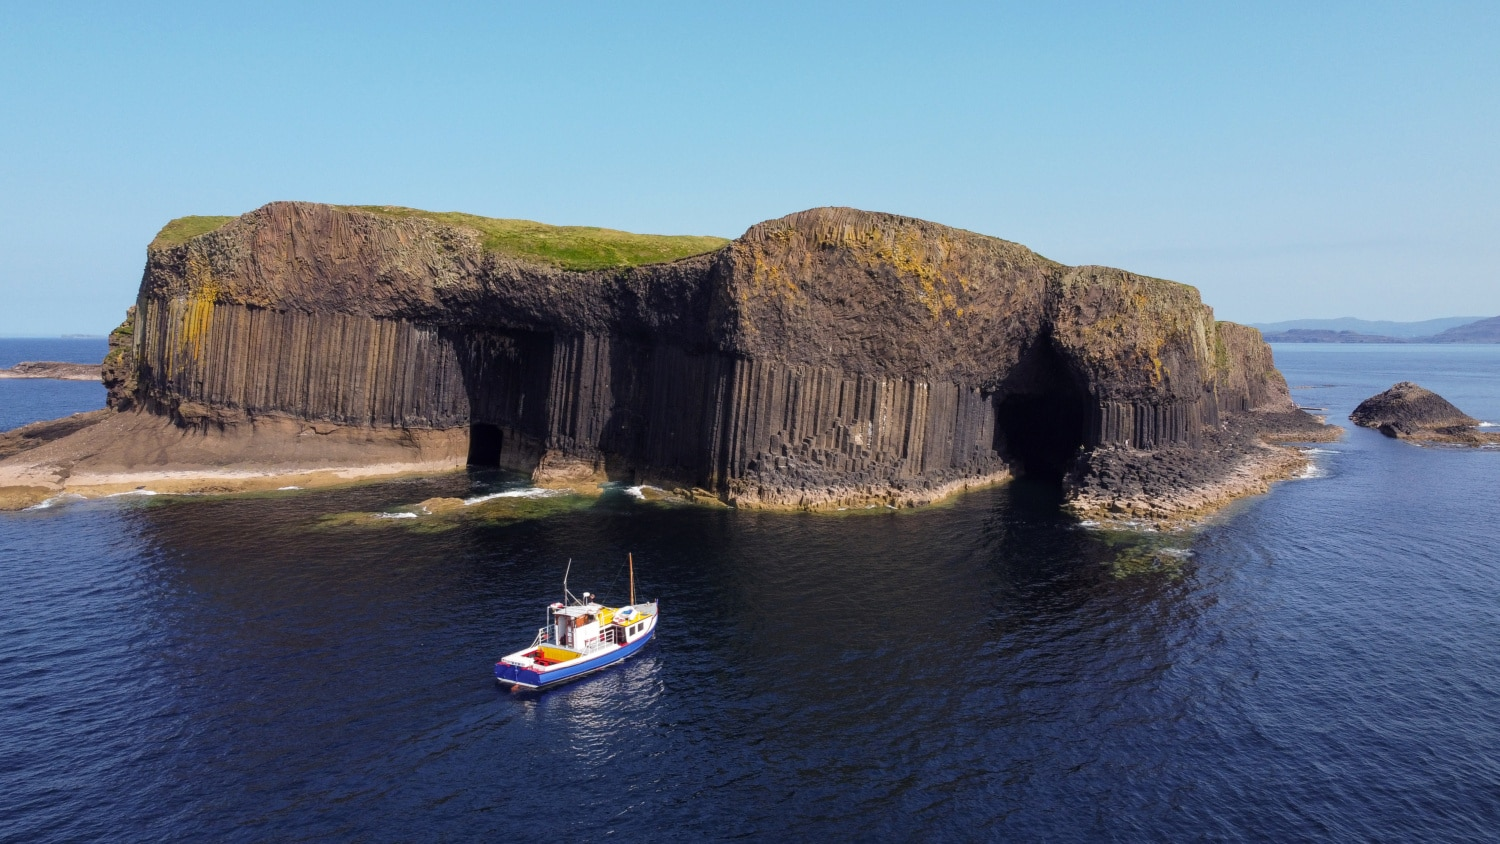 Island Lass boat approaching Fingals Cave on Staffa